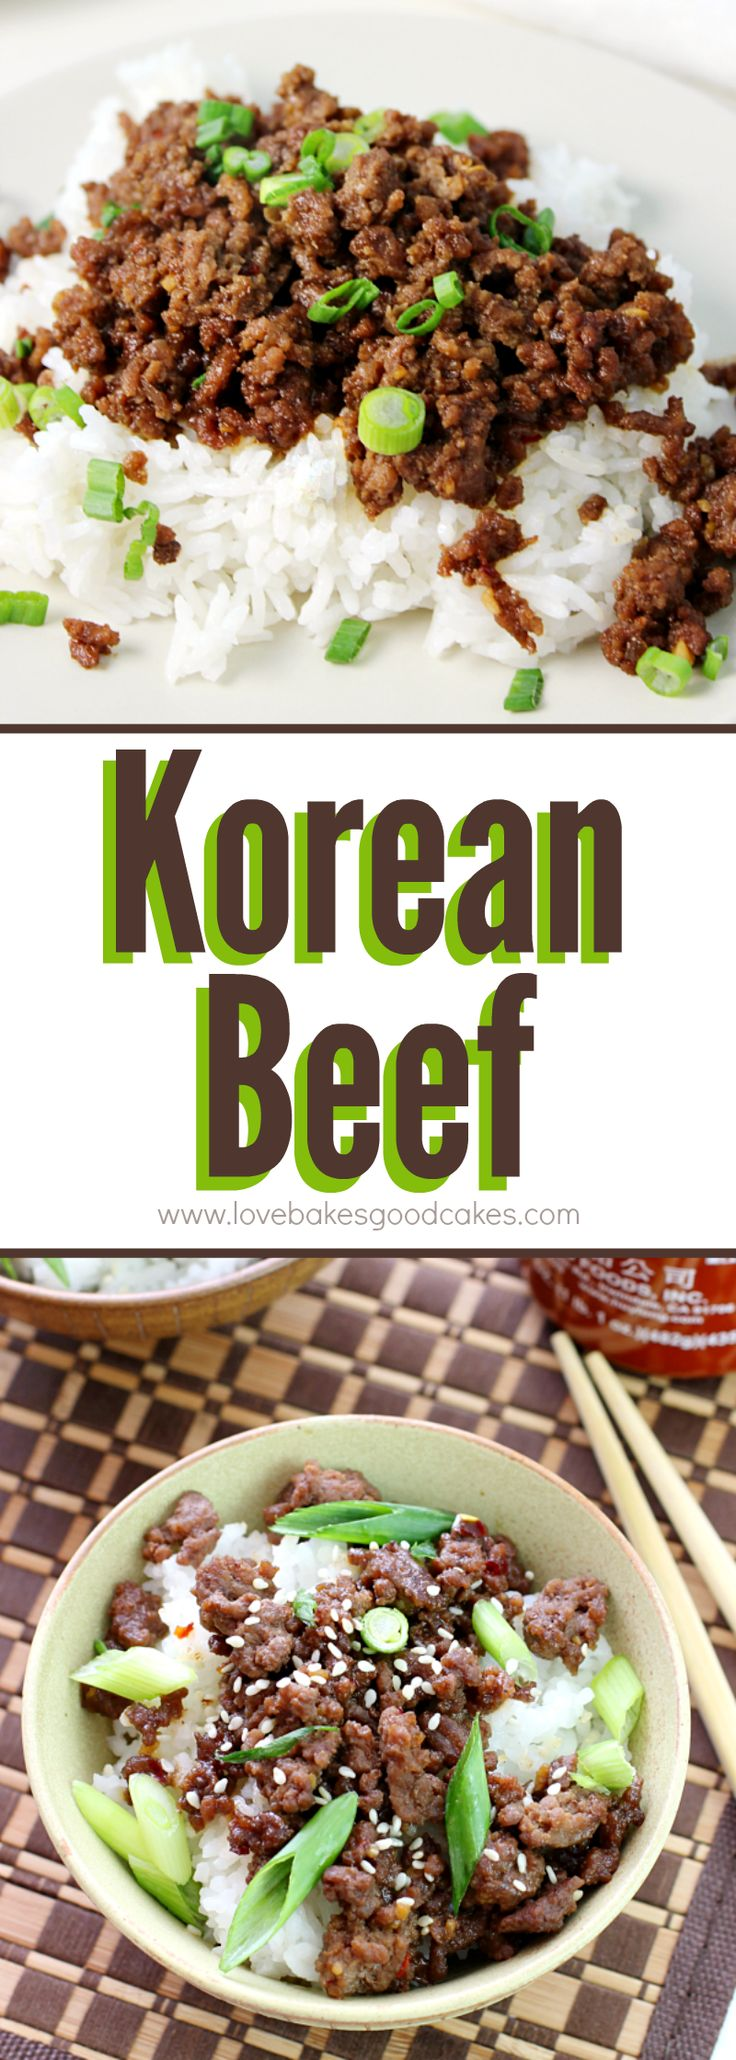 This Korean Beef recipe is so popular!! It's perfect for a quick, easy and flavorful dinner - Serve it over rice or in lettuce leaves for a meal the entire family will love!: